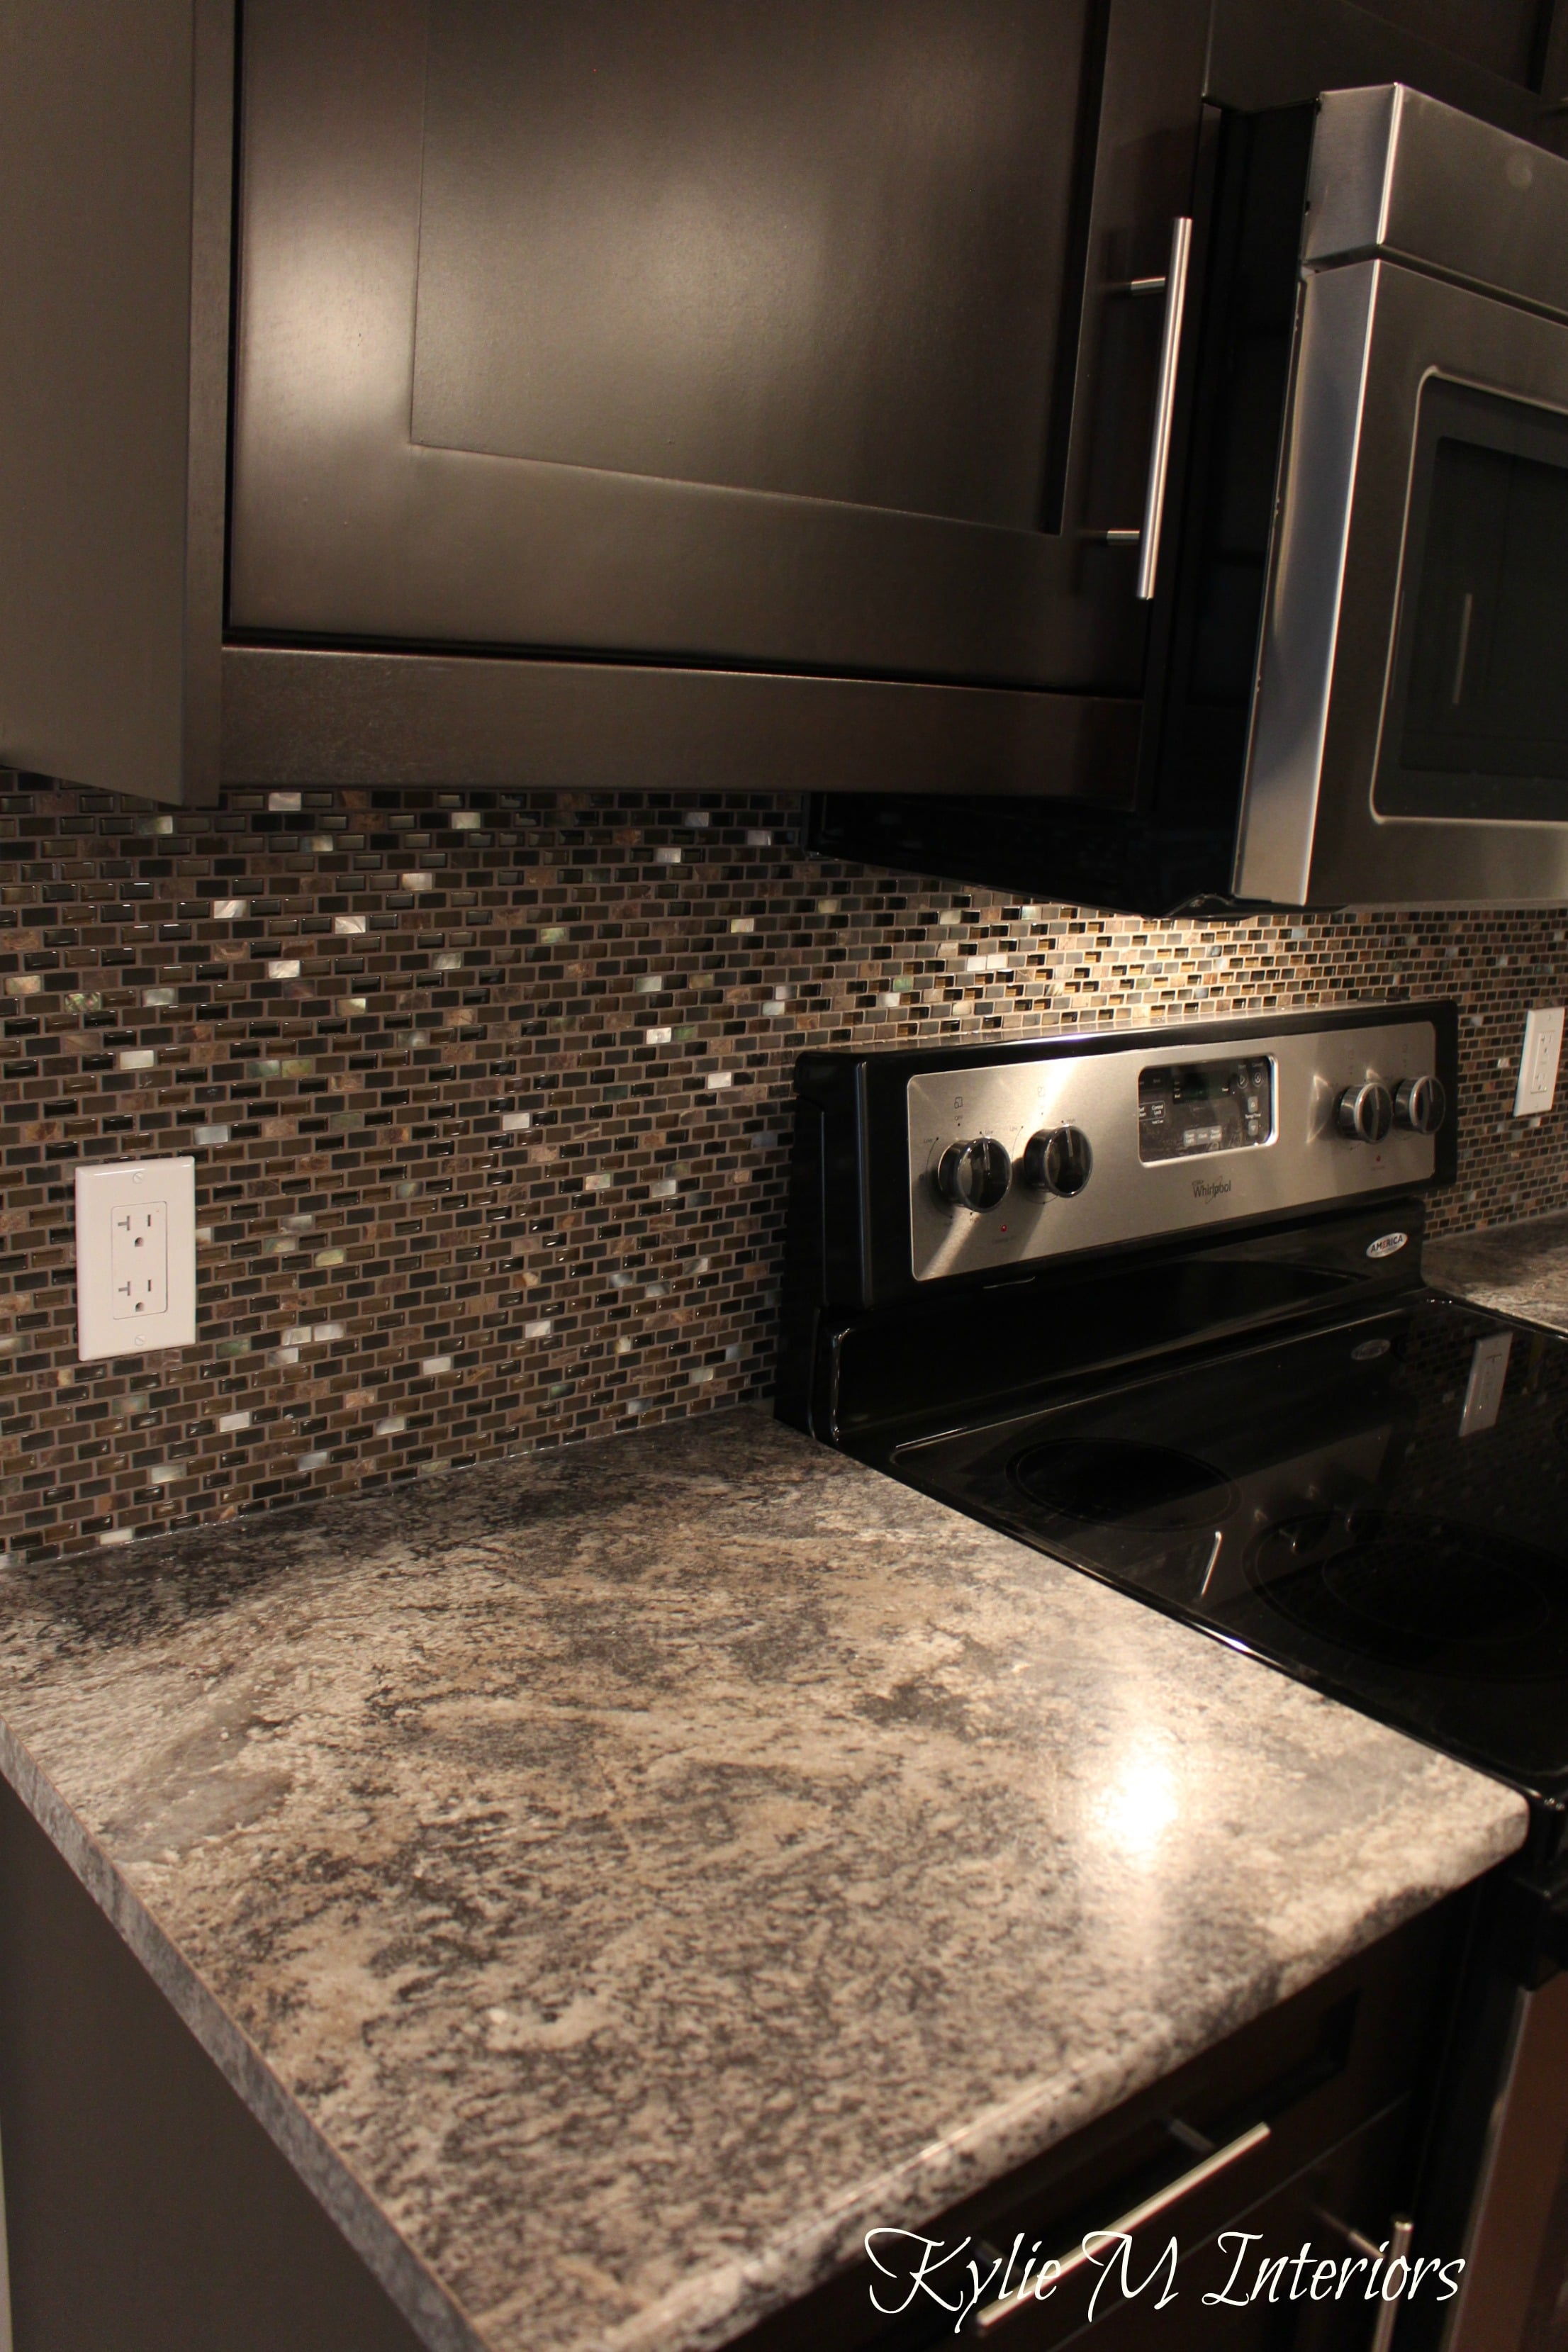 Harold Pionite Laminate Countertop Brown Mosaic Tile Backsplash And Espresso Dark Wood Cabinets